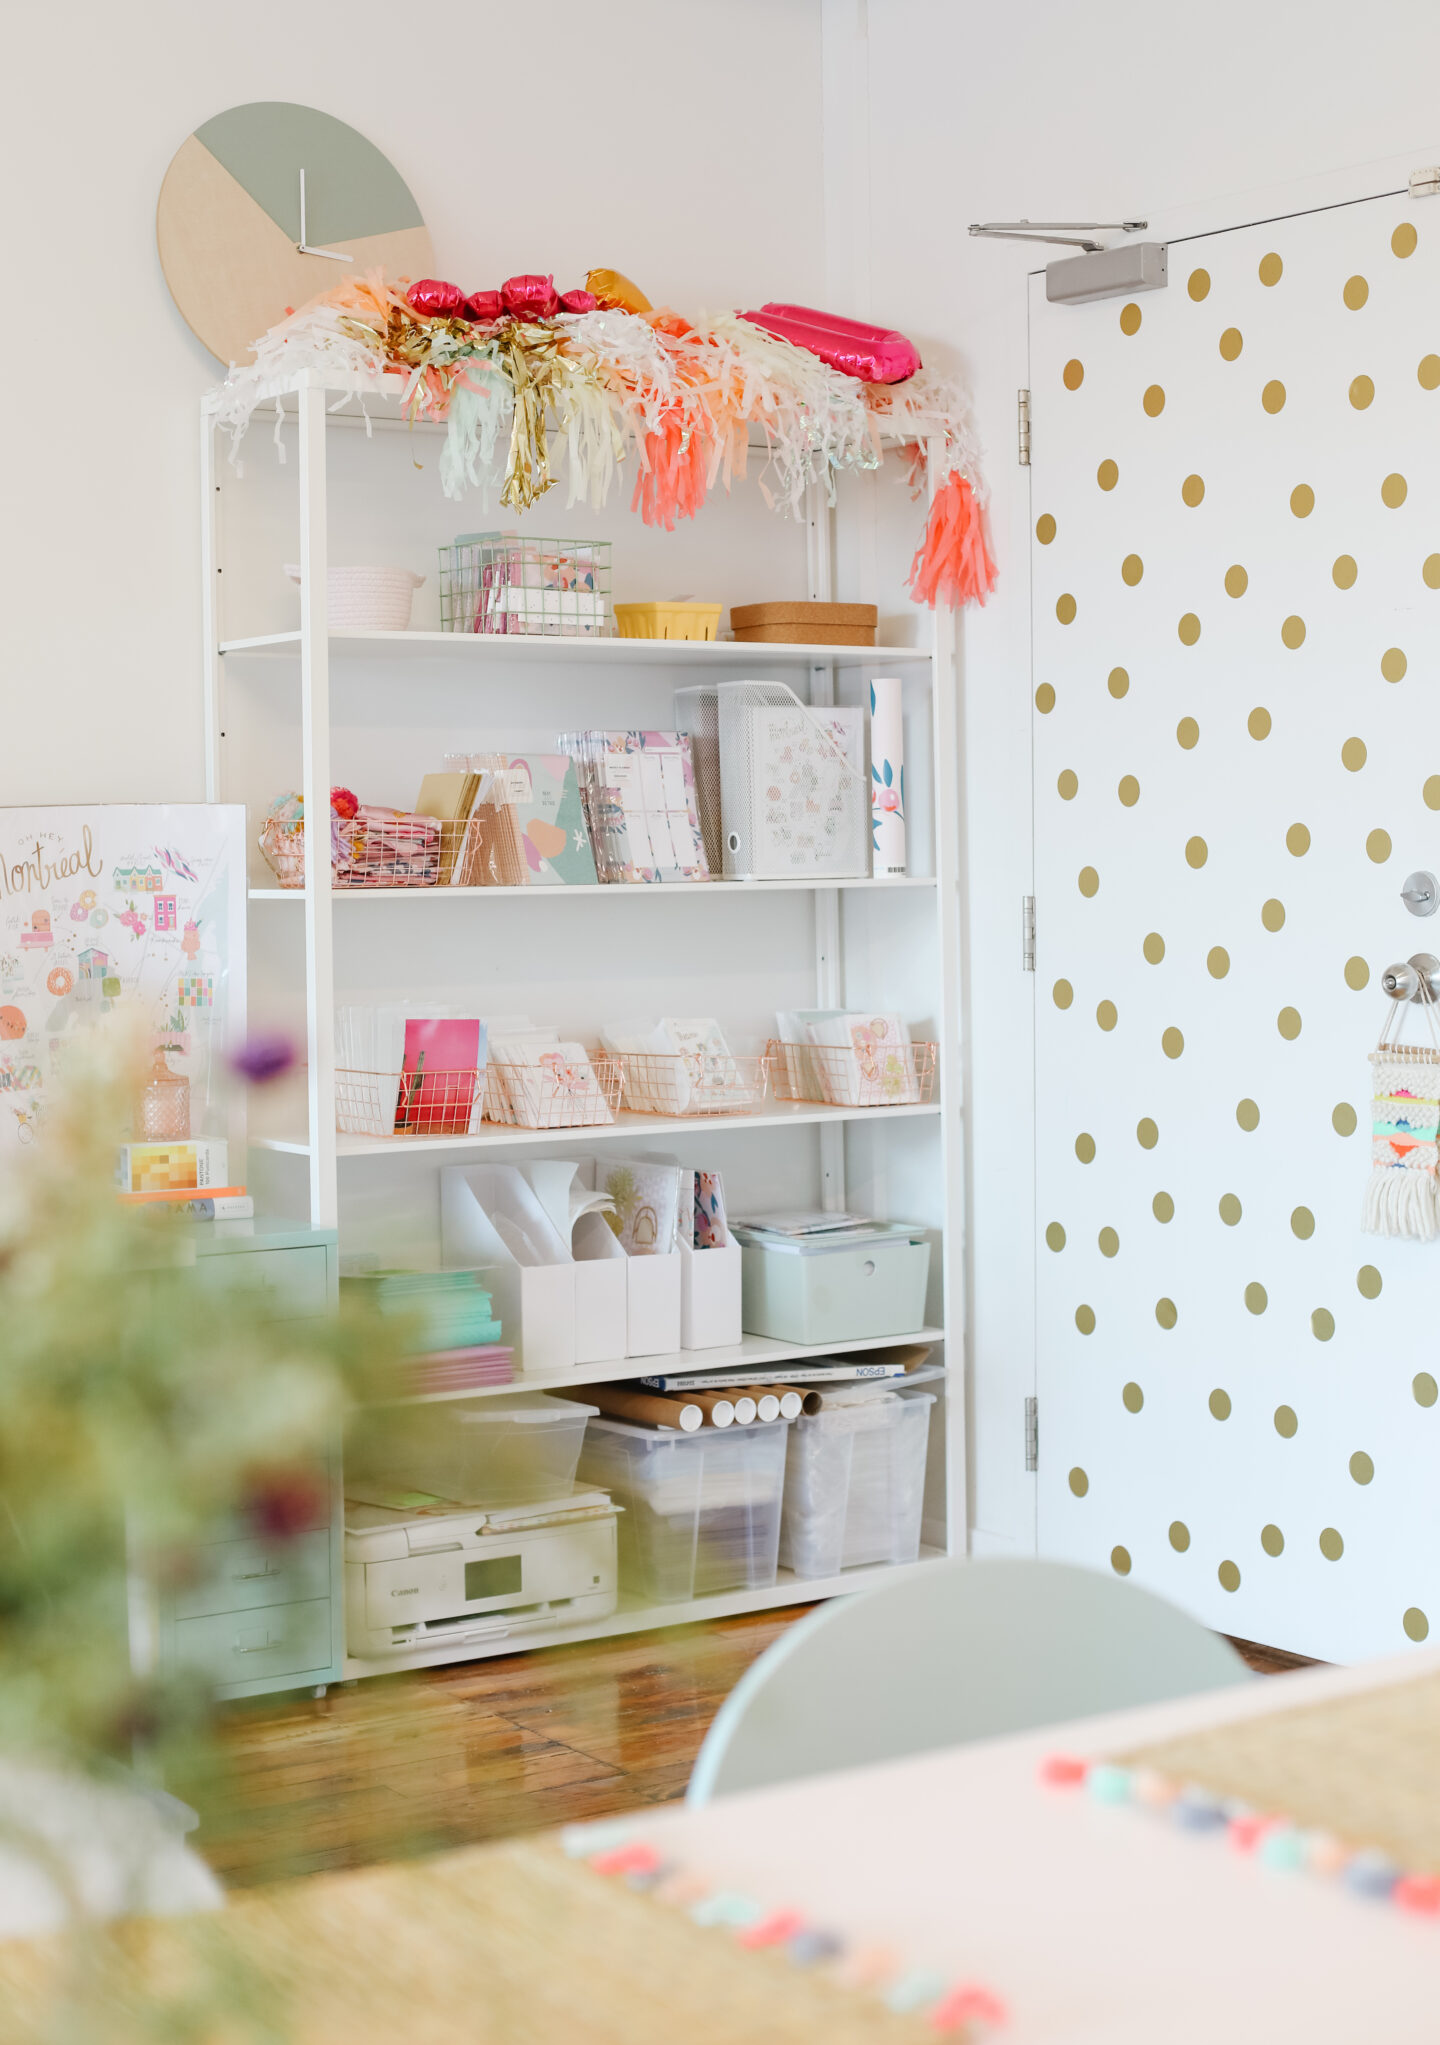 How to decorate a pastel office